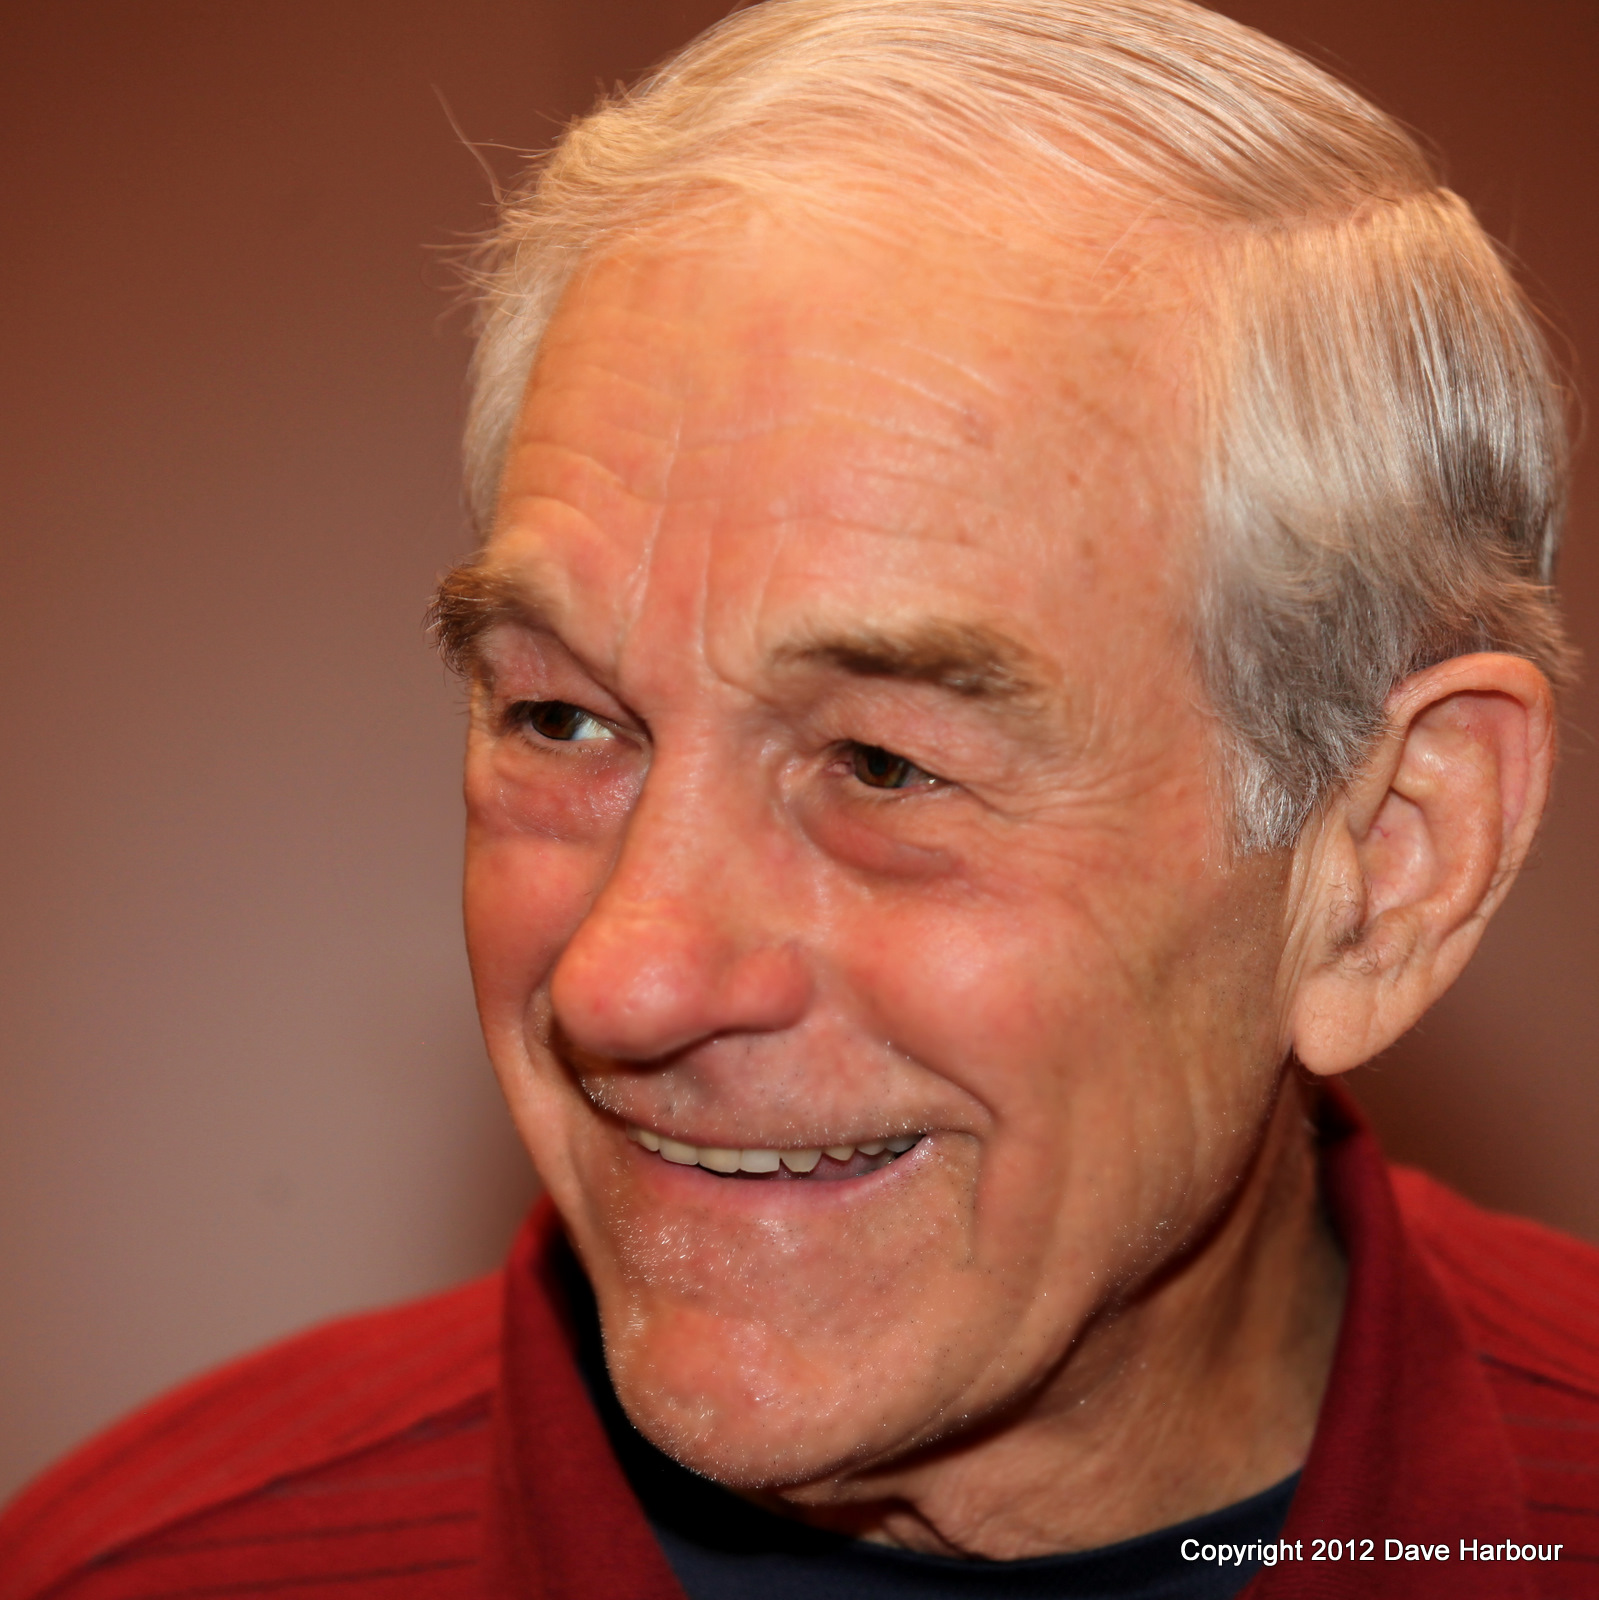 Ron Paul, Alaska Visit with wife Carol and Granddaughter Linda, Anchorage, Fairbanks, Ron Paul for President